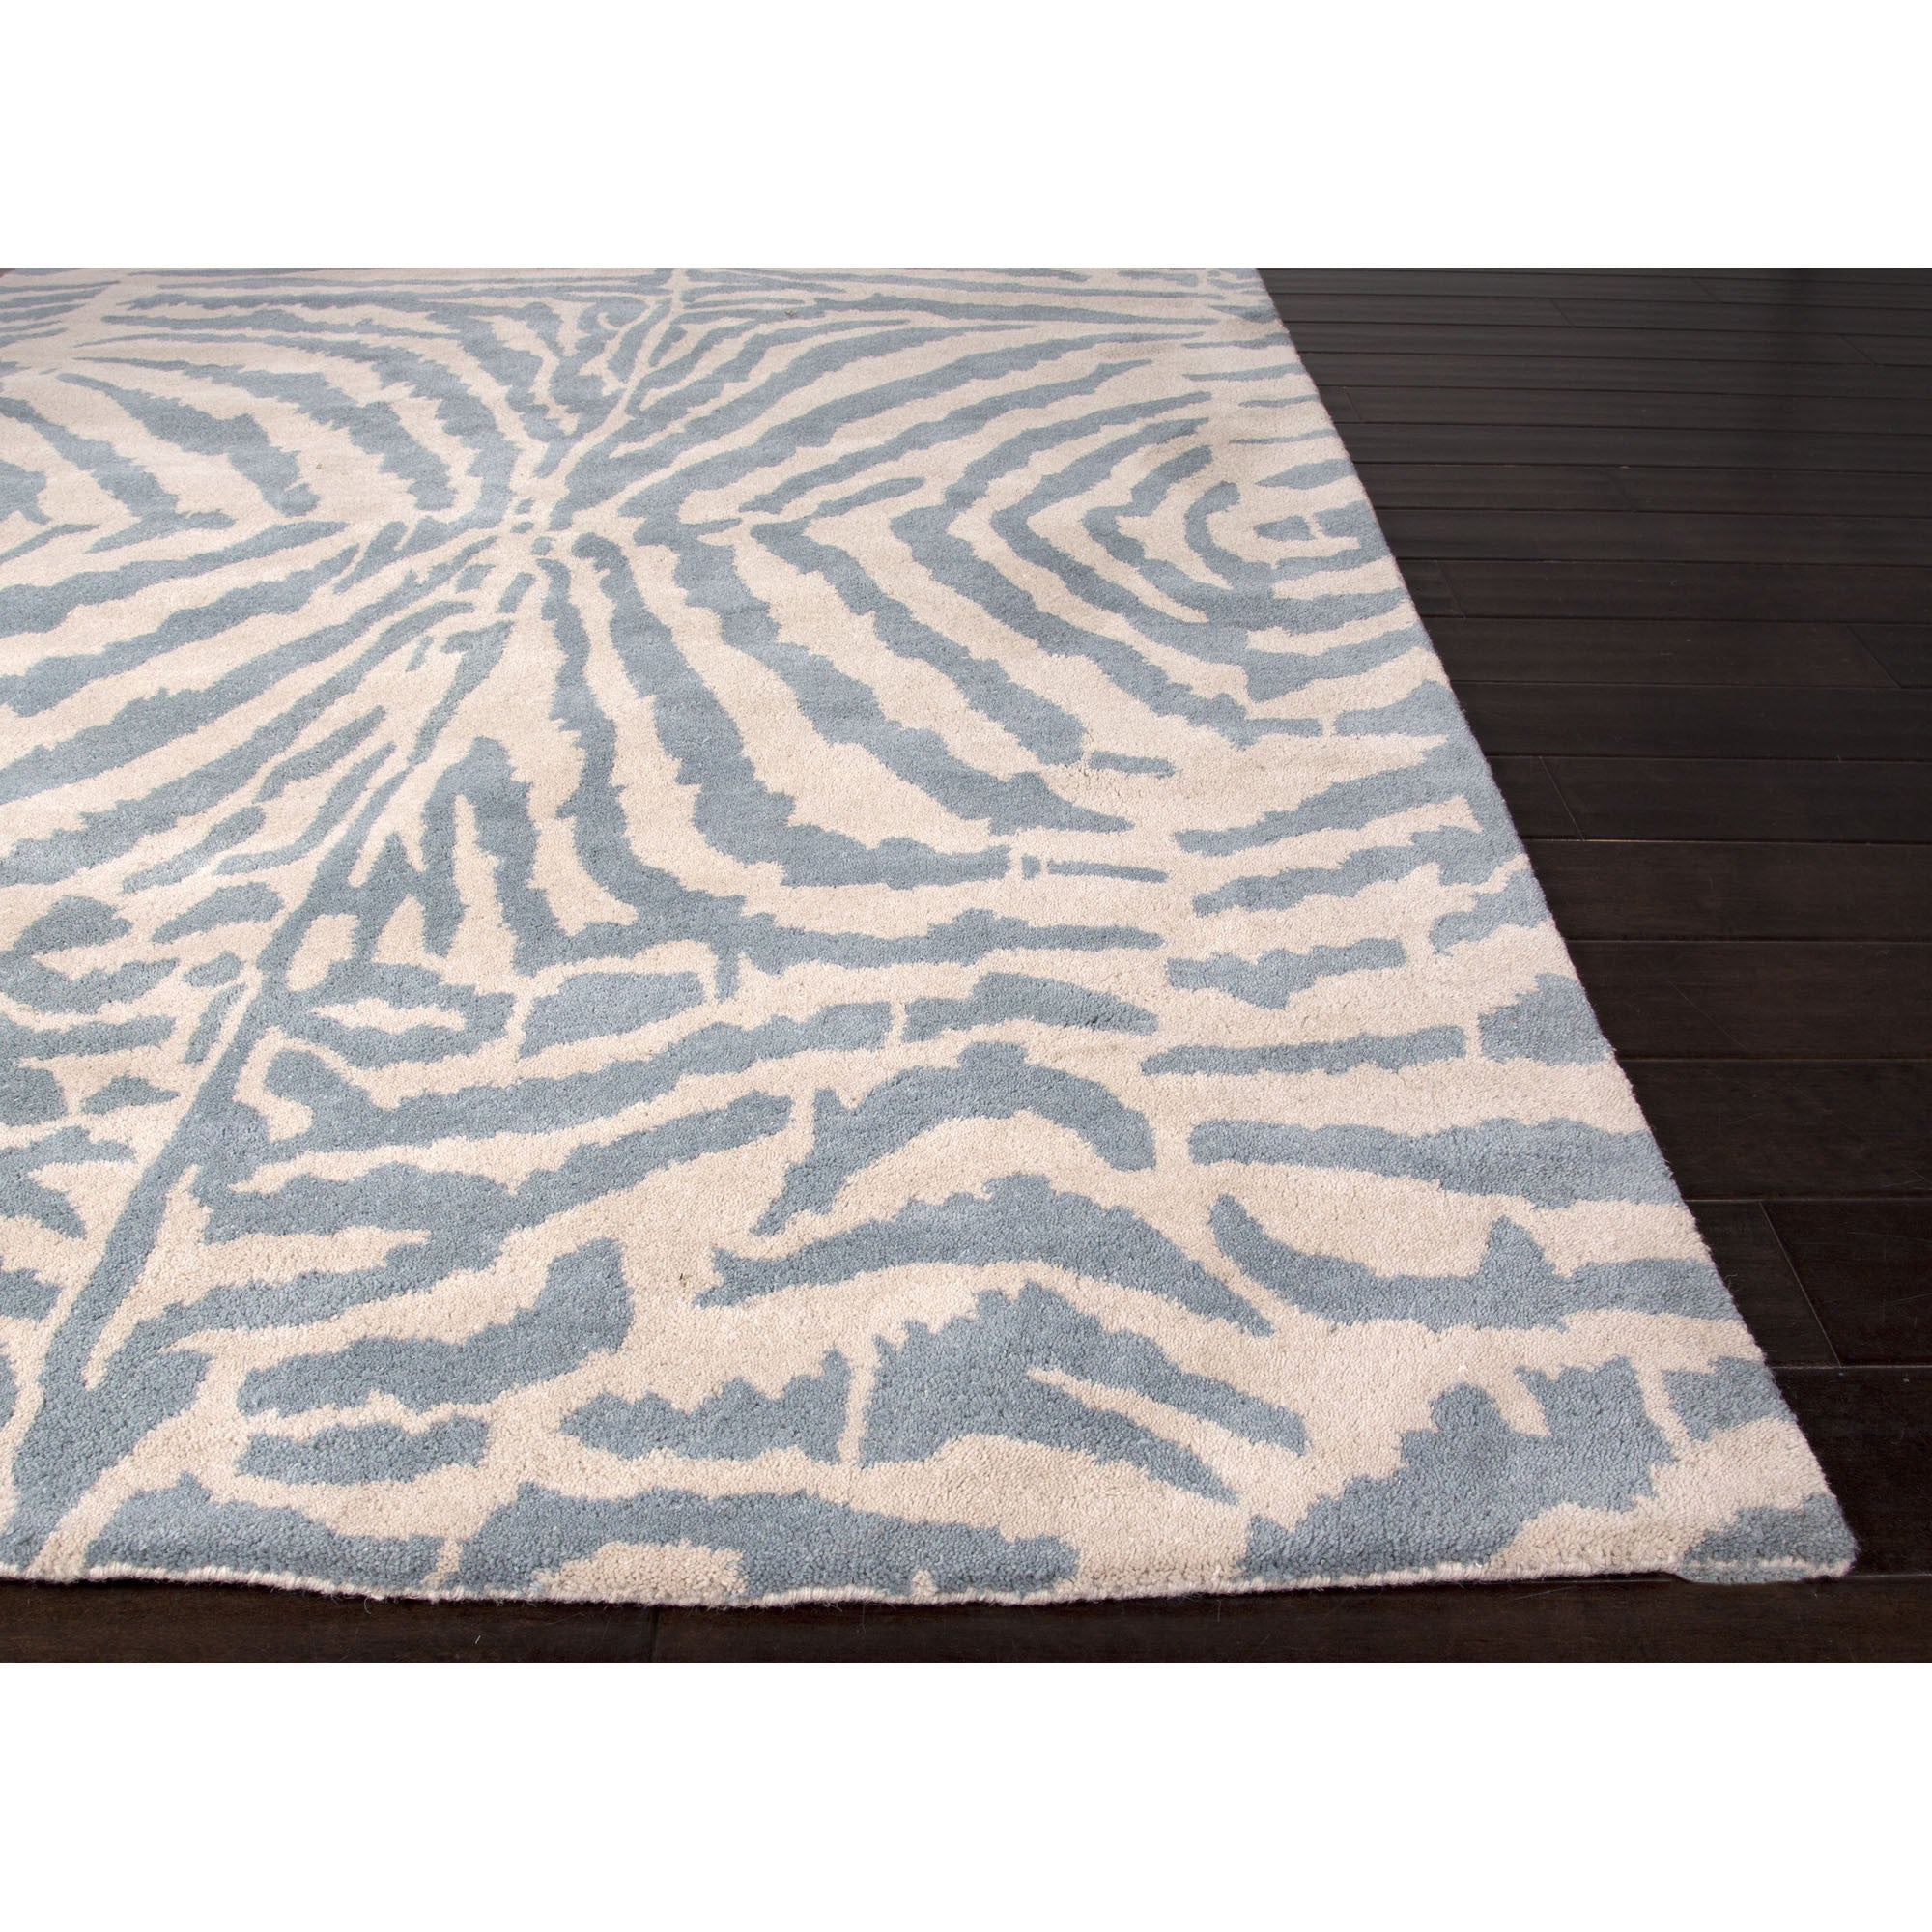 Jaipur rugs modern animal print pattern blue ivory wool for Modern wool area rugs